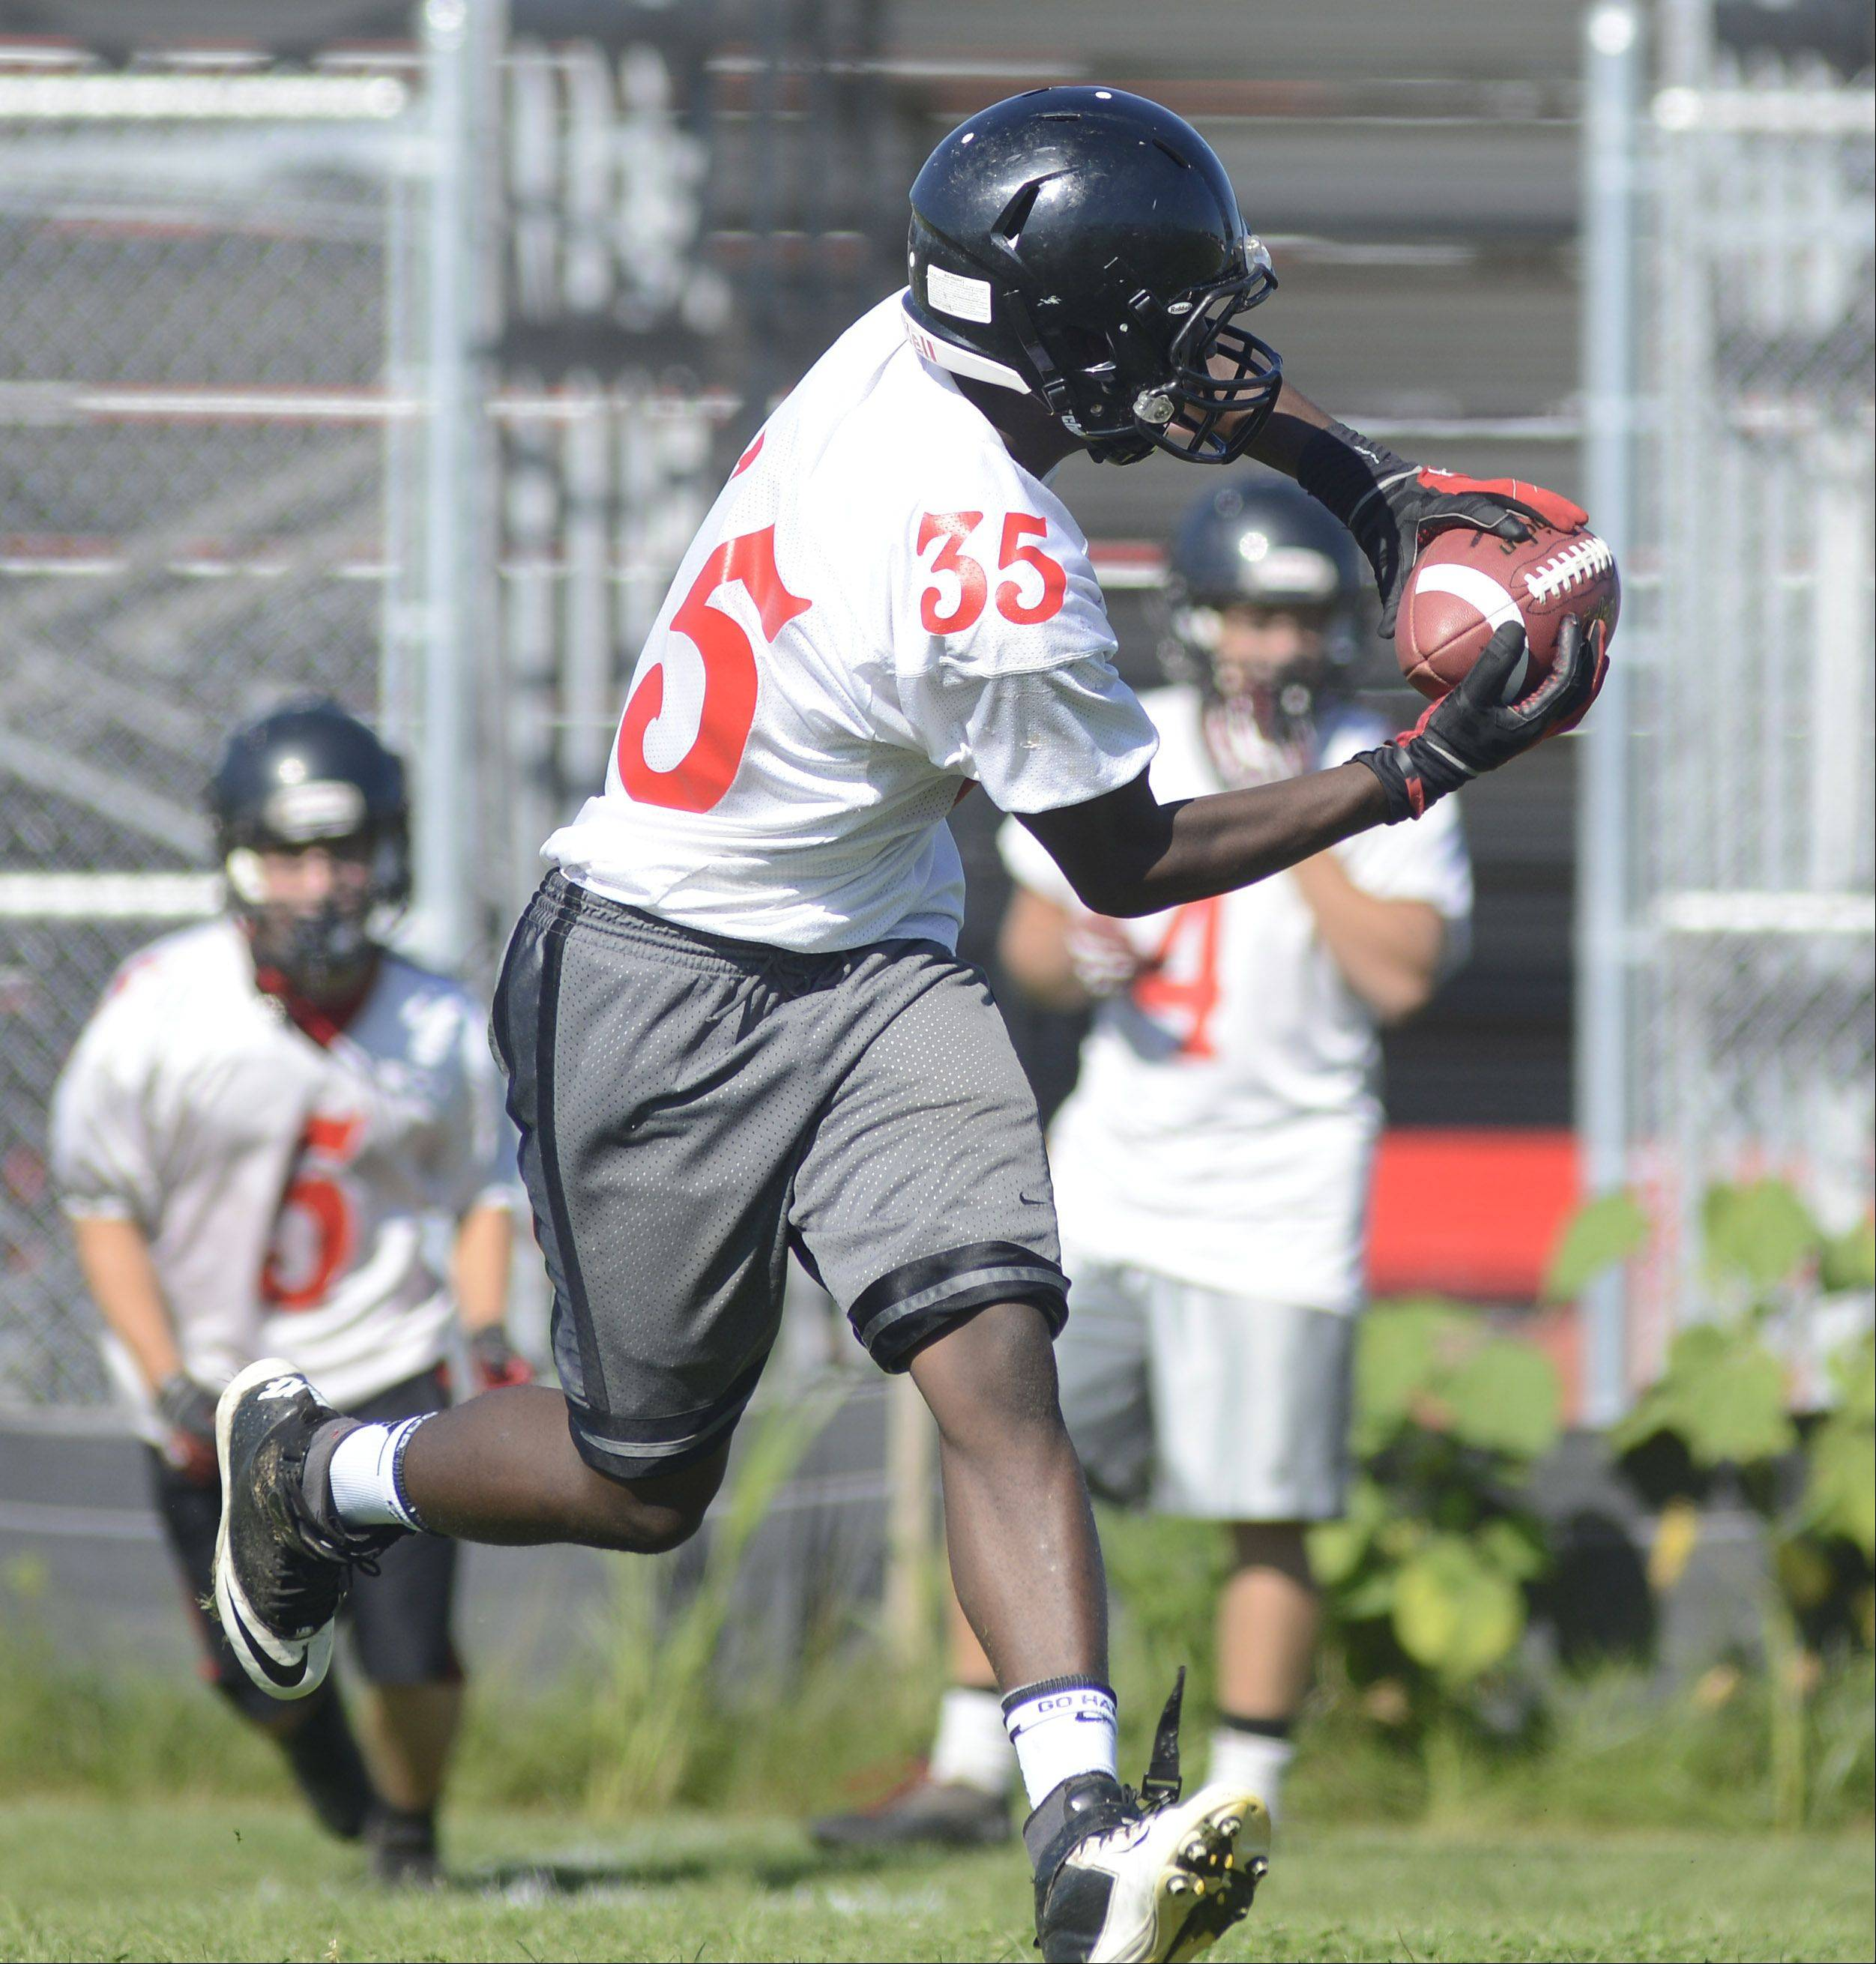 Junior Josh Esi catches the ball (framing teammate senior Mitchell Kawell in background) during a speed drill for varsity football's first day of practice at Huntley High School on Wednesday, August 14.